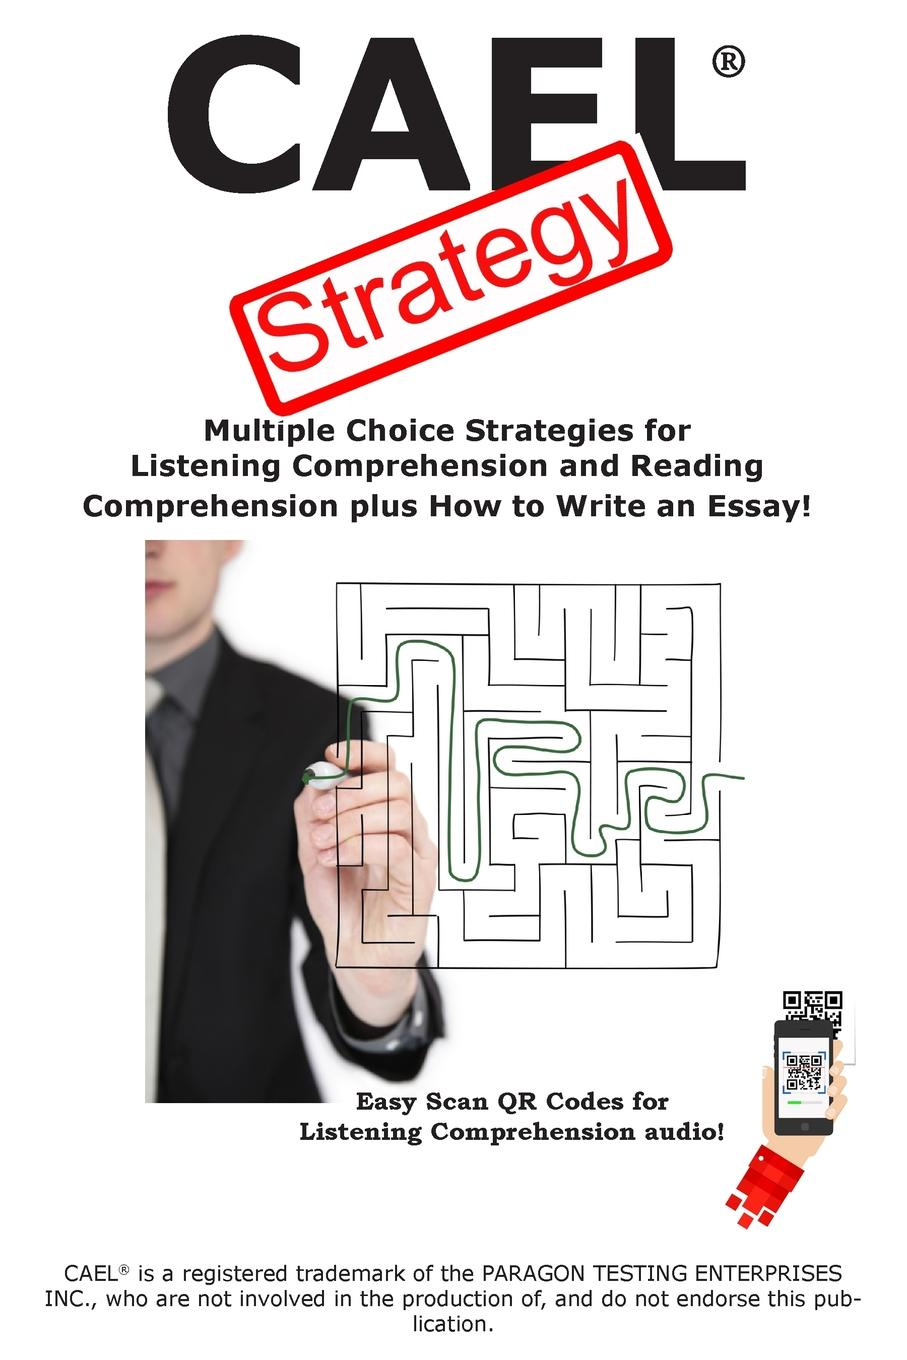 Complete Test Preparation Inc. CAEL Test Strategy. Multiple Choice Strategies for Listening Comprehension and Reading Comprehension plus How to Write an Essay. marcus alexander strategy for the corporate level where to invest what to cut back and how to grow organisations with multiple divisions